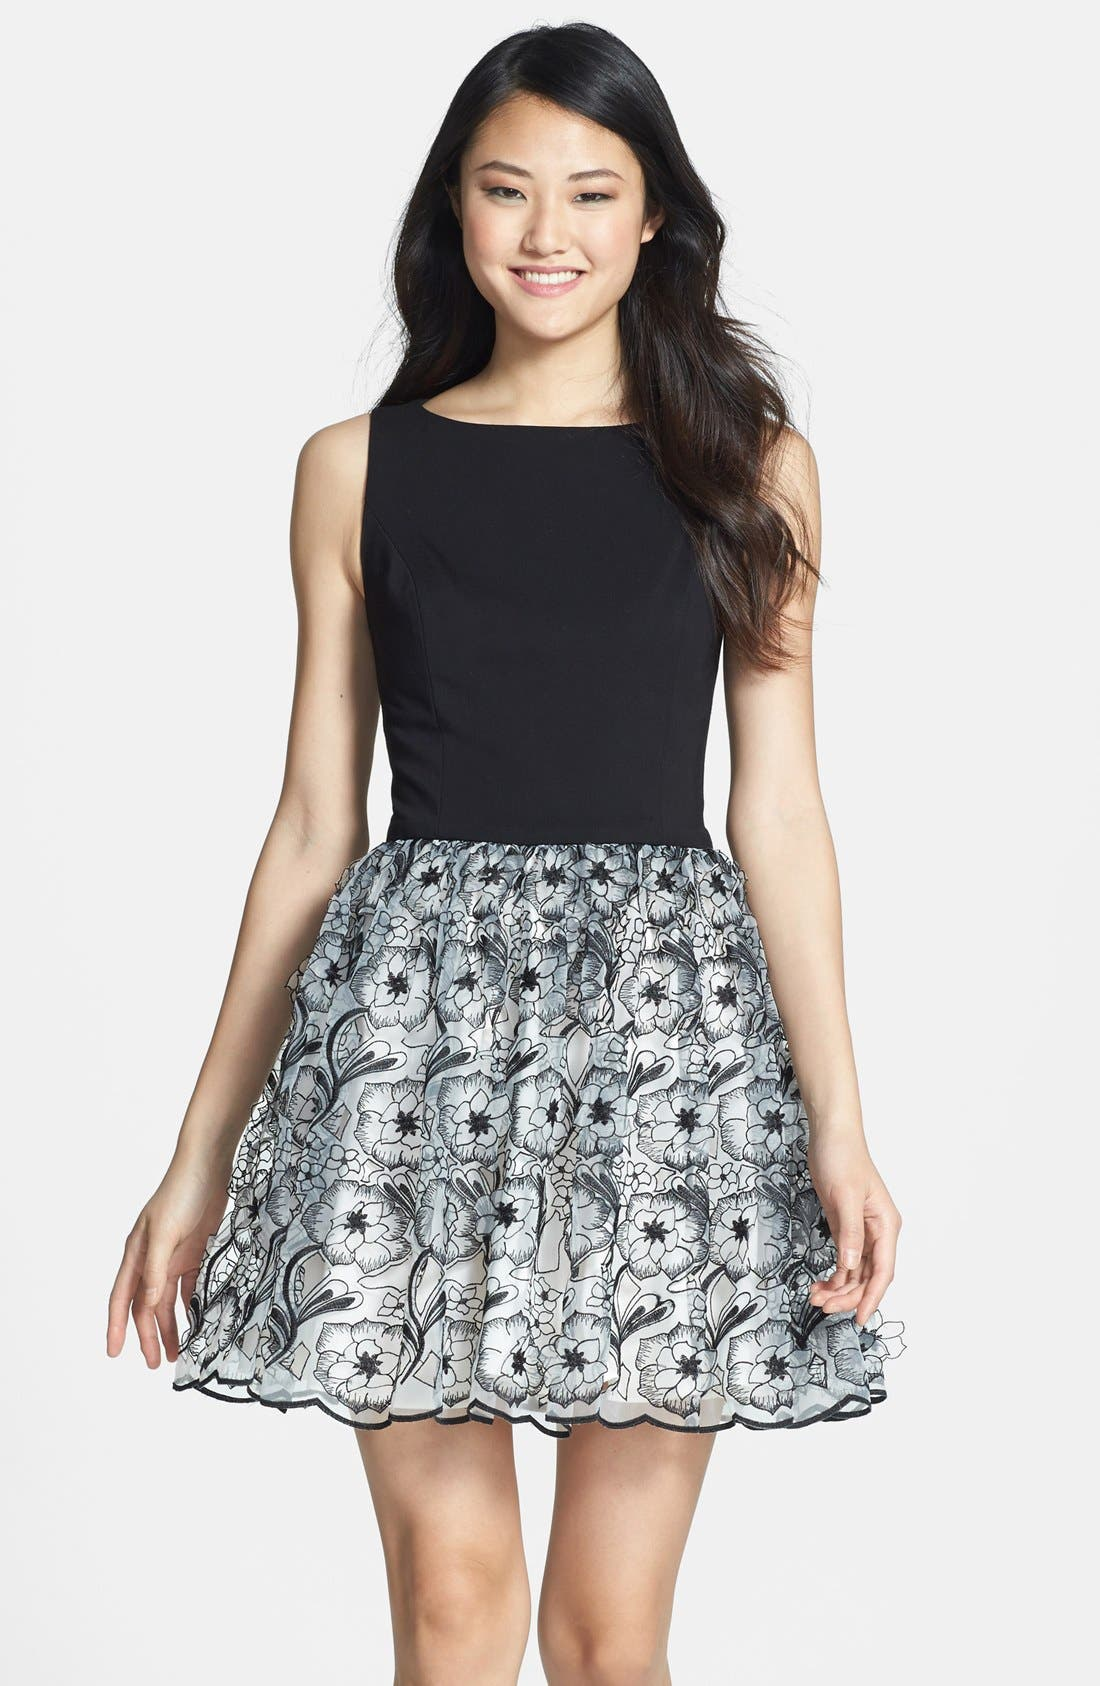 Main Image - ERIN erin fetherston 'Peony 3D' Fit & Flare Dress